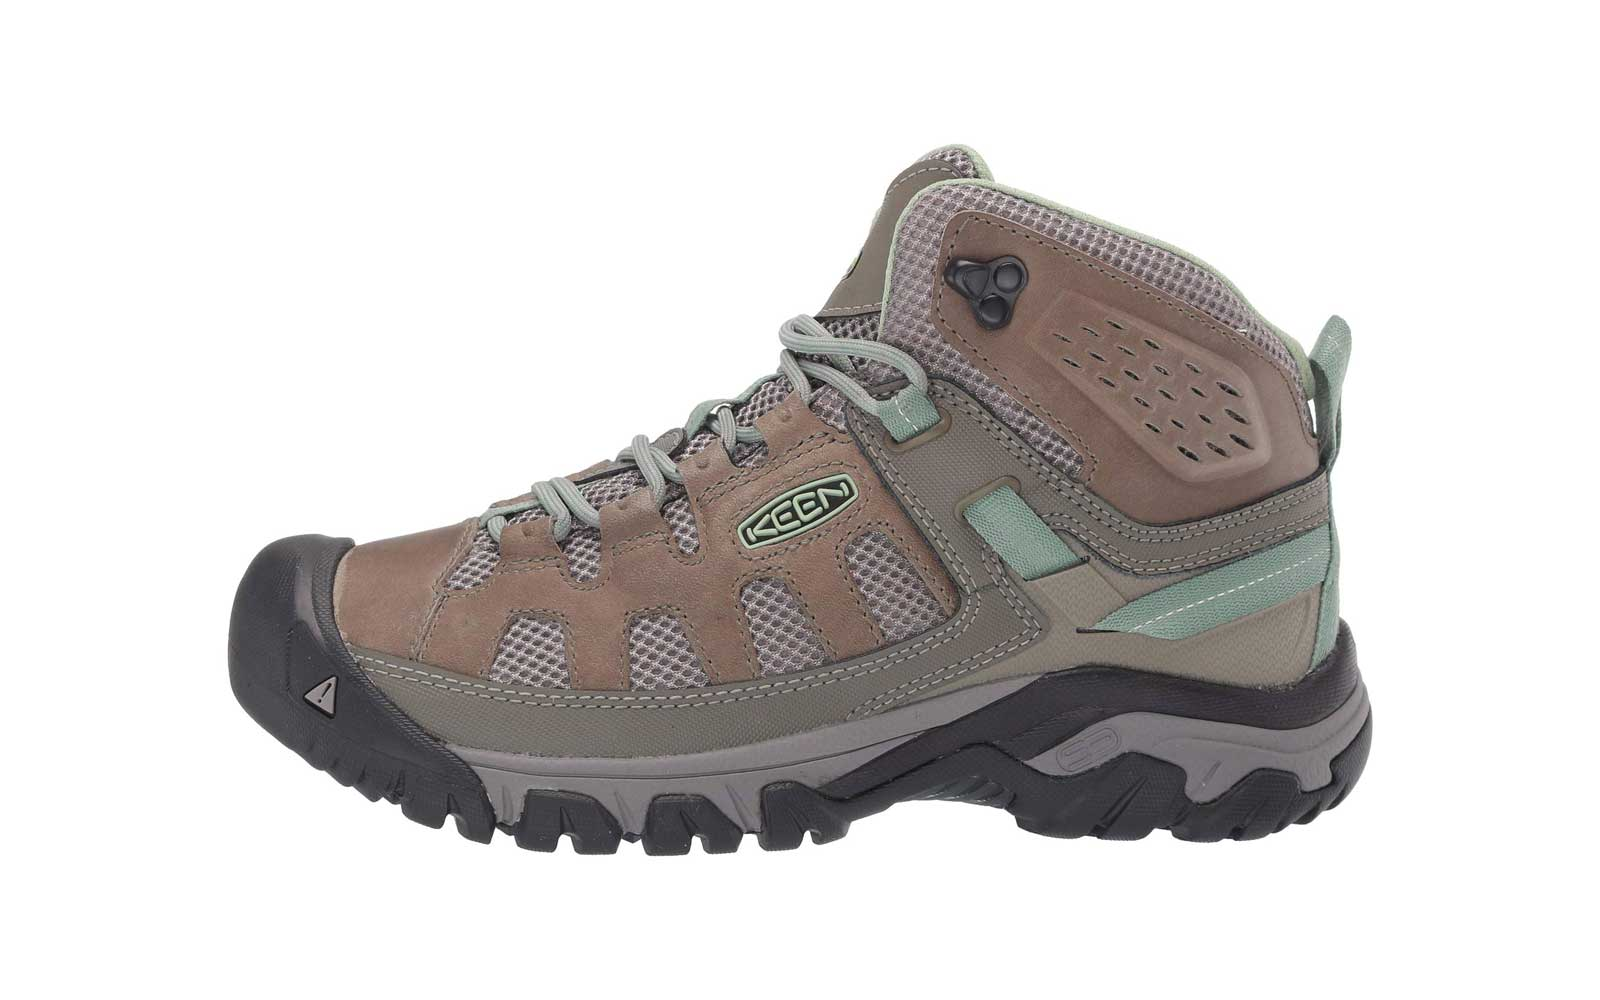 c8c16c79f The 20 Best Hiking Shoes and Boots for Women in 2019 | Travel + Leisure